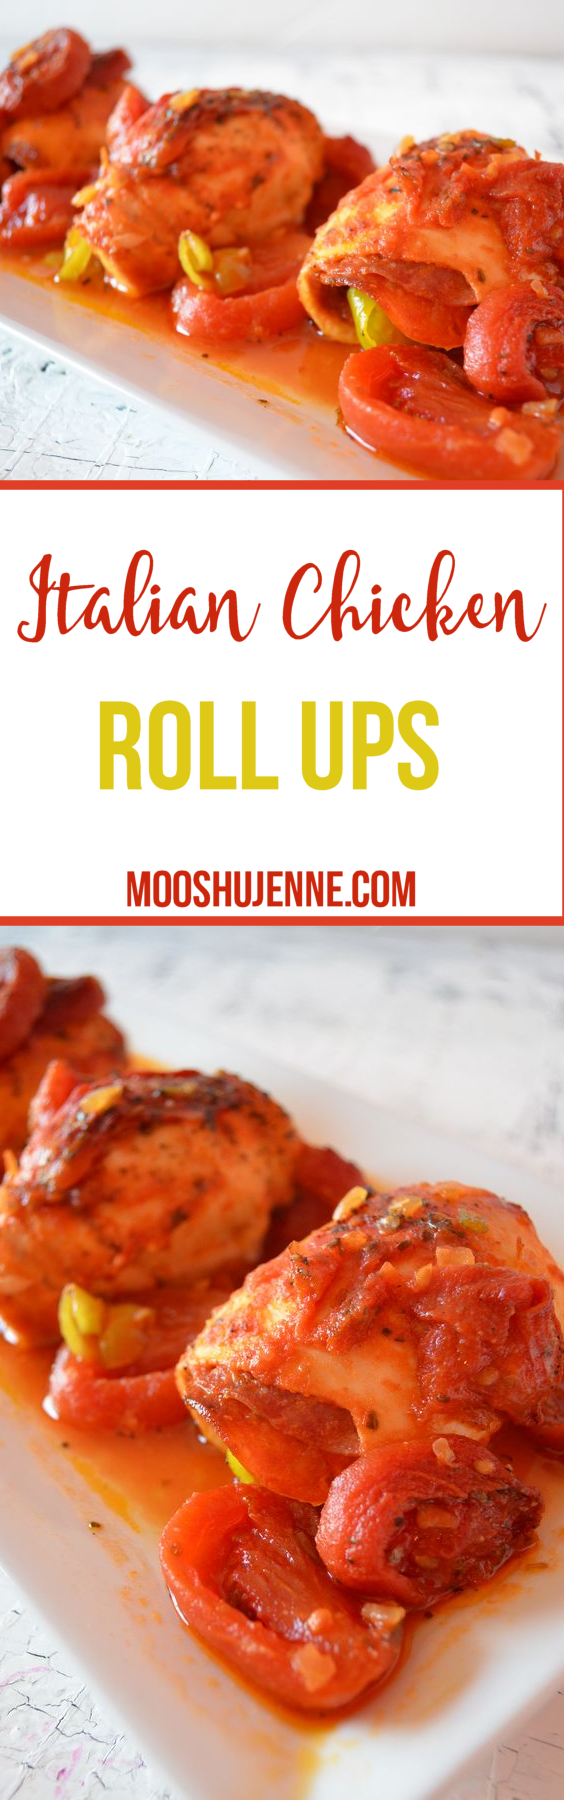 Italian Chicken Roll Ups